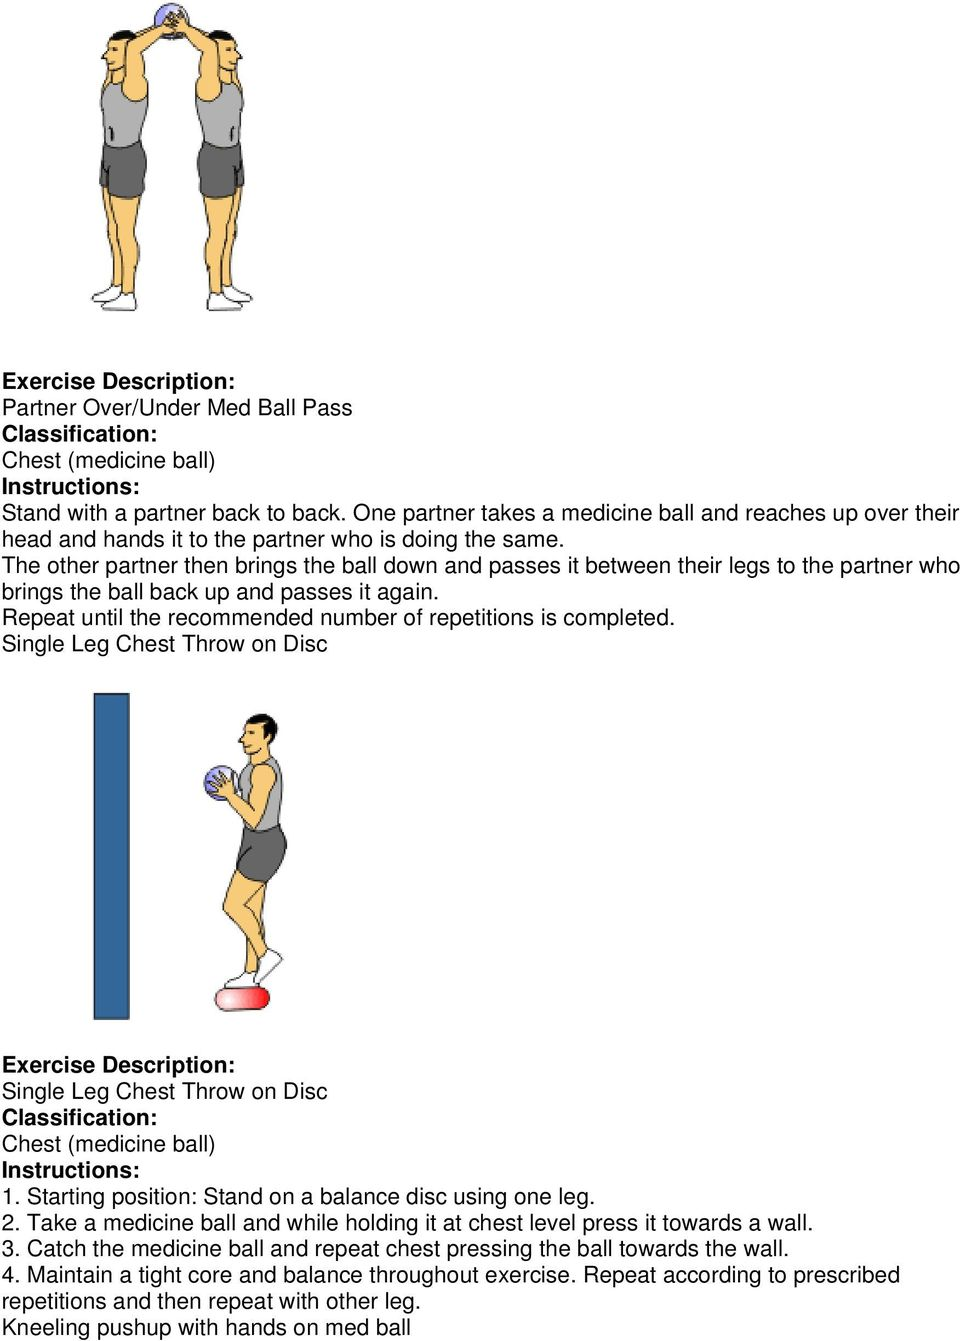 Repeat until the recommended number of repetitions is completed. Single Leg Chest Throw on Disc Single Leg Chest Throw on Disc 1. Starting position: Stand on a balance disc using one leg. 2.